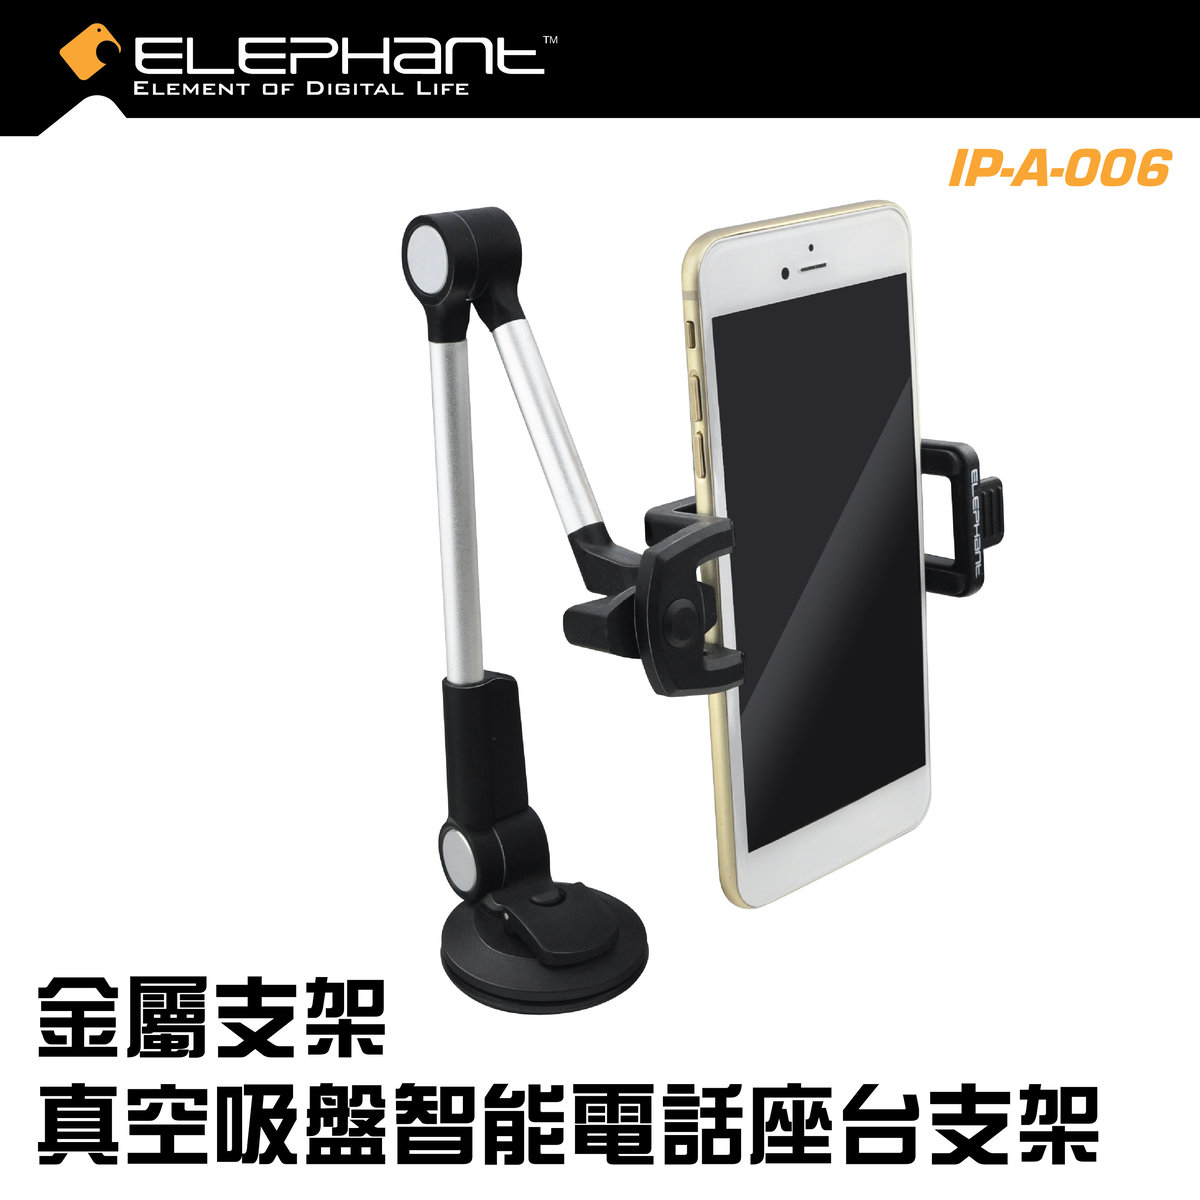 IP-A-006-SILVER Smartphone Holder Buy one Get one